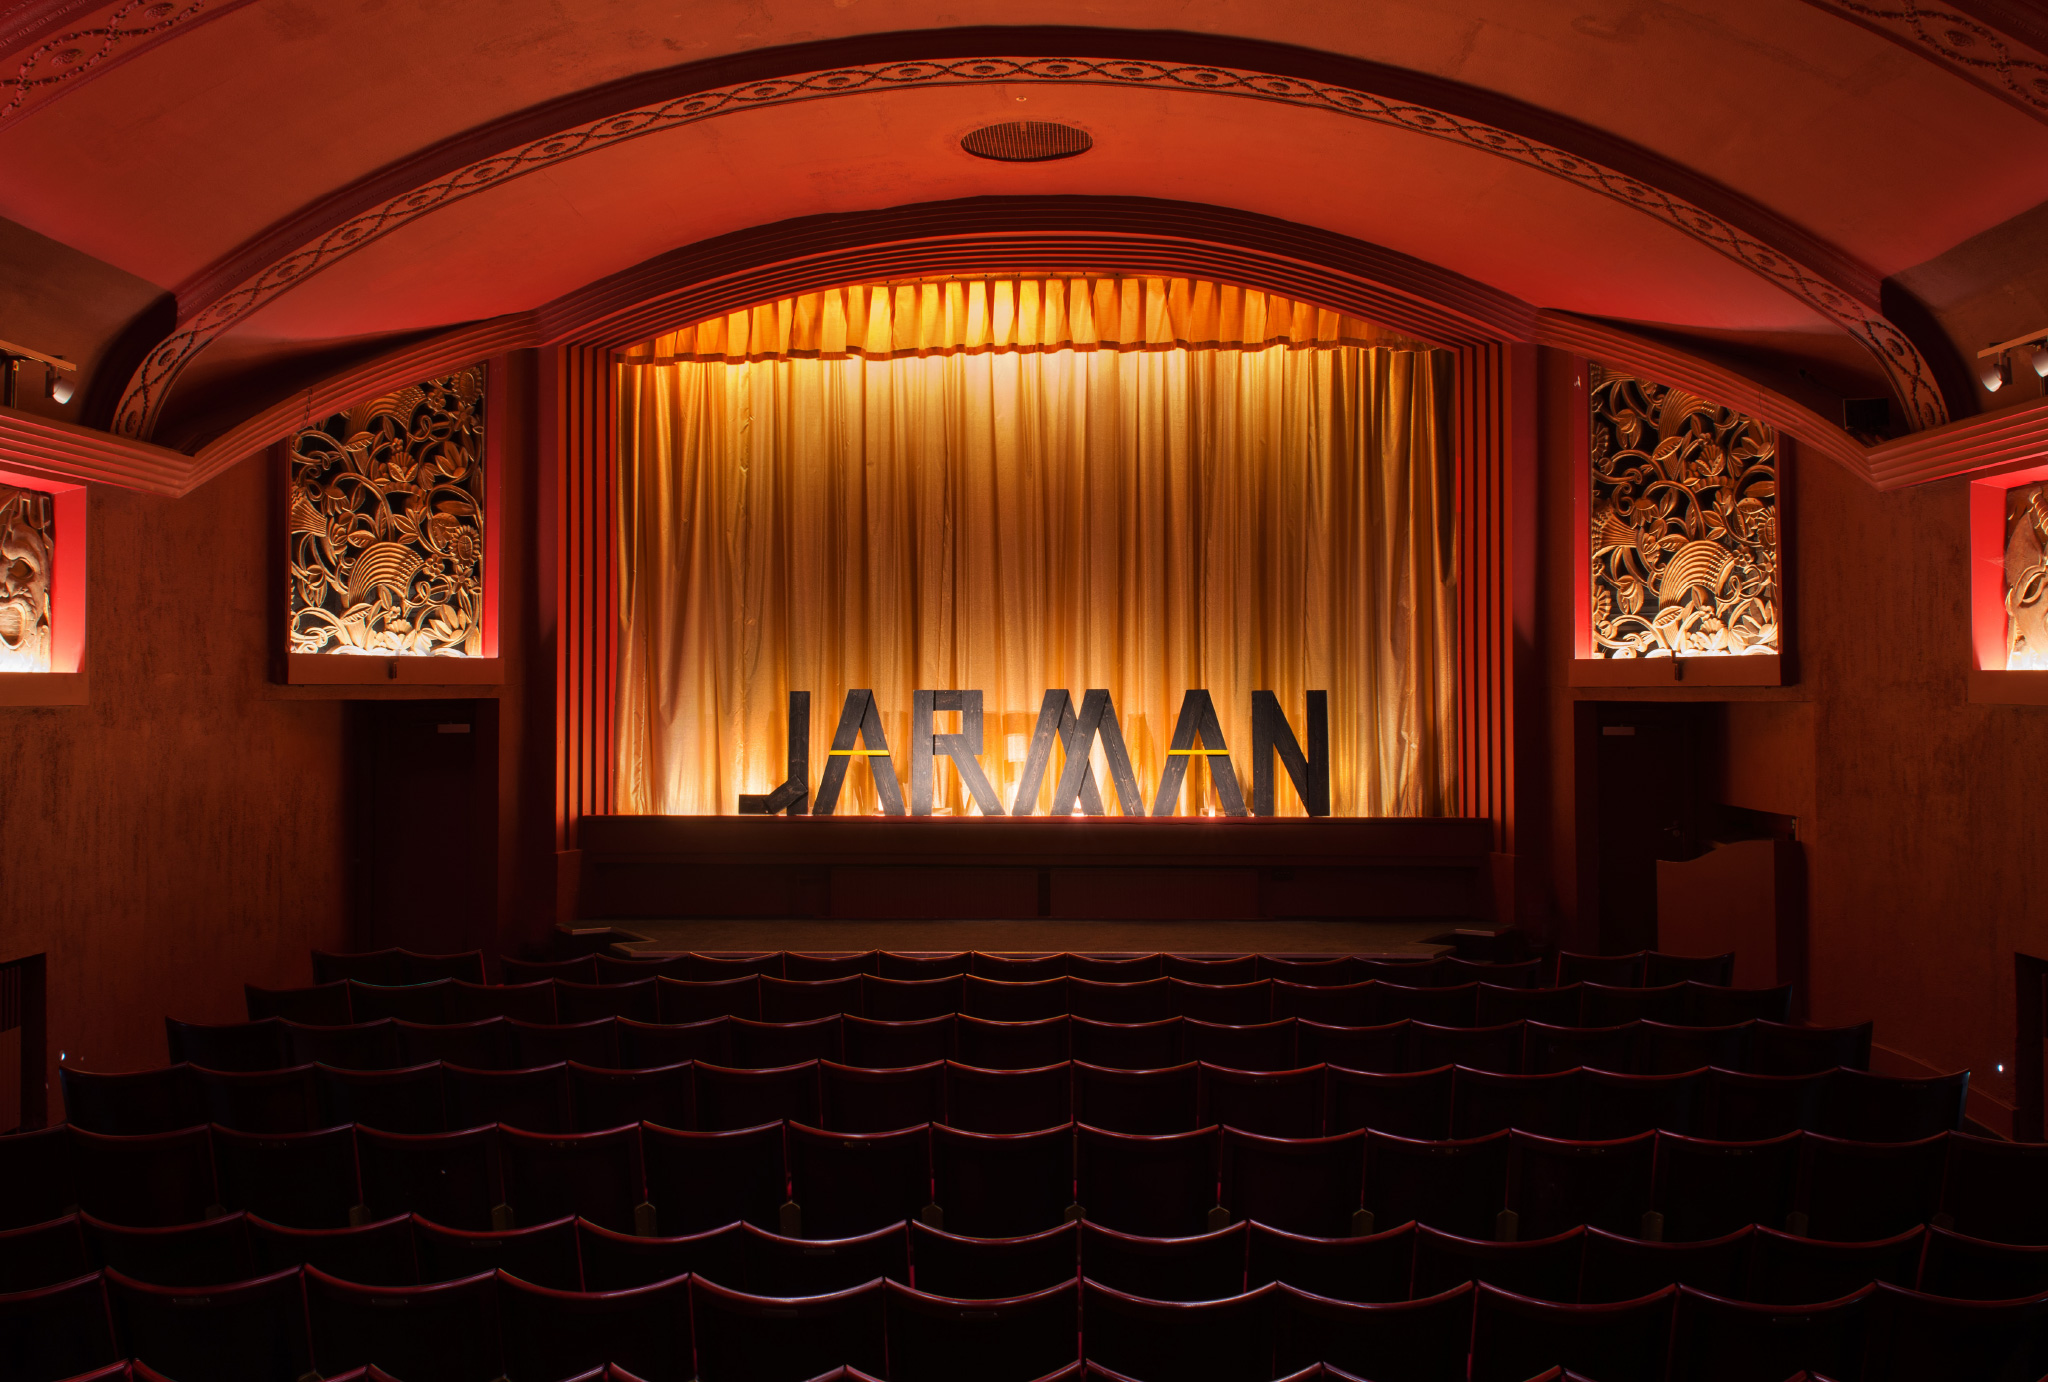 old cinema with red walls, word 'JARMAN' made out of wooden letters standing on the stage